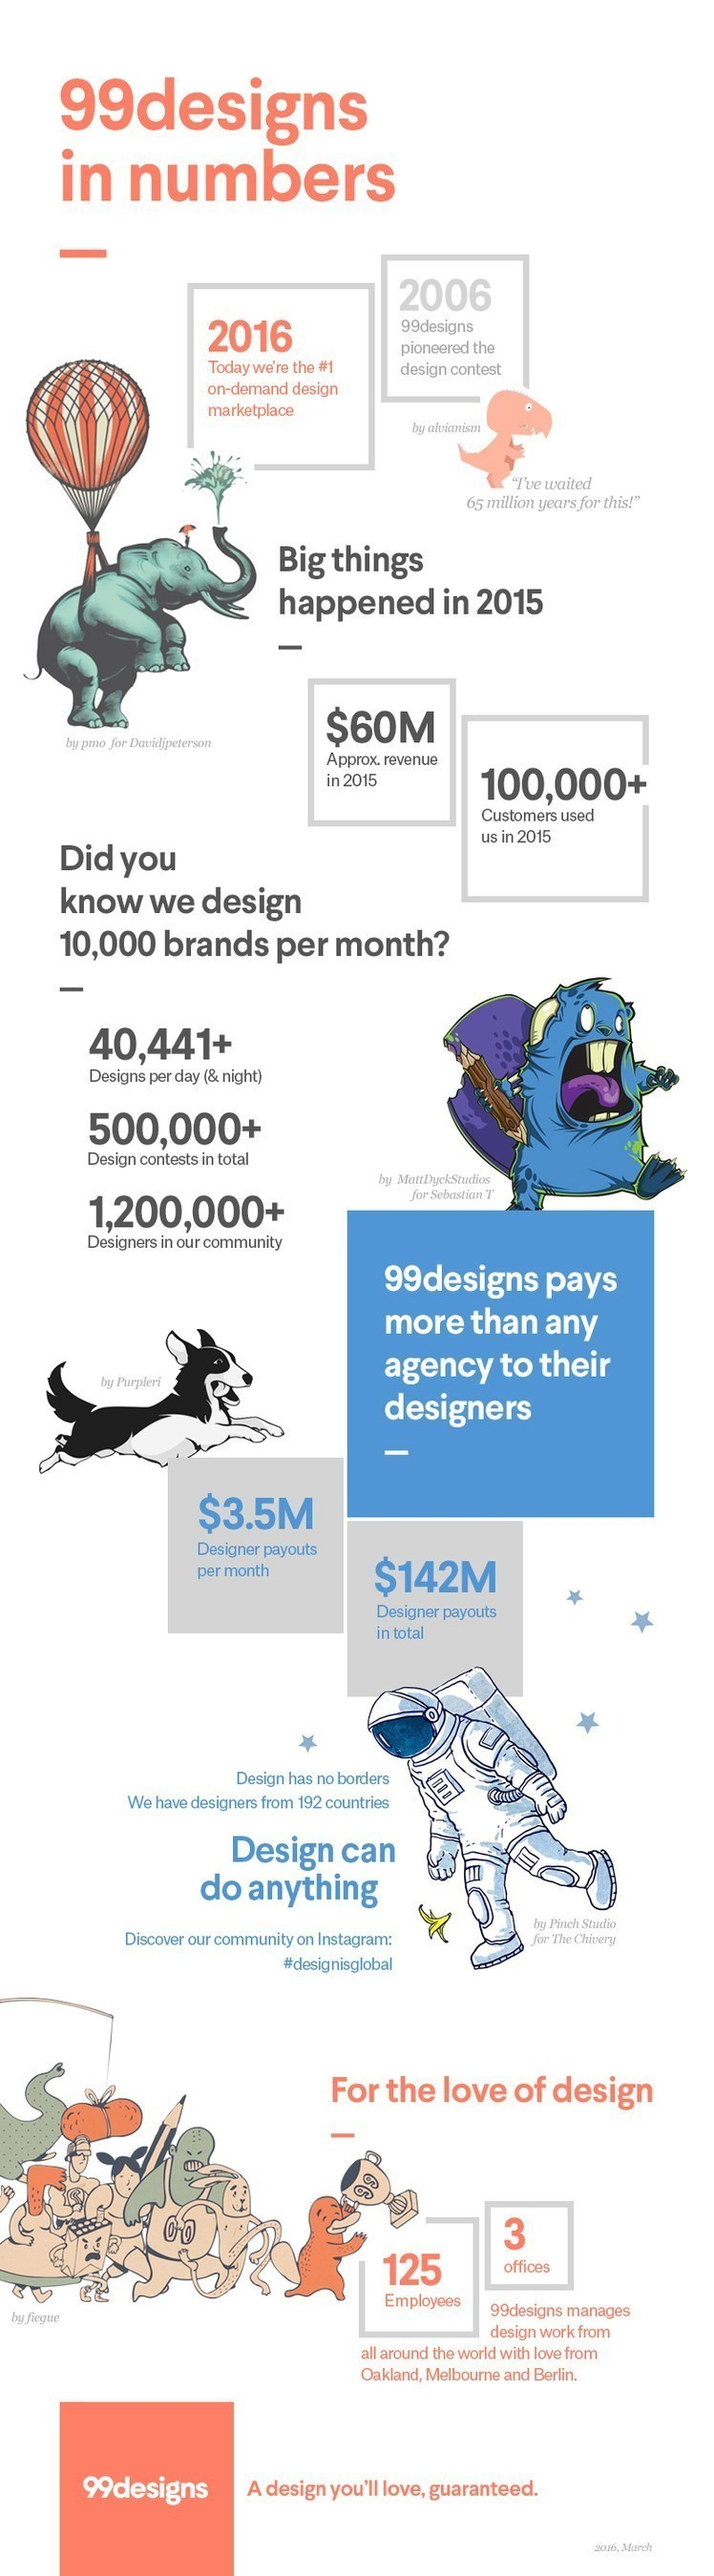 99designs in numbers infographic